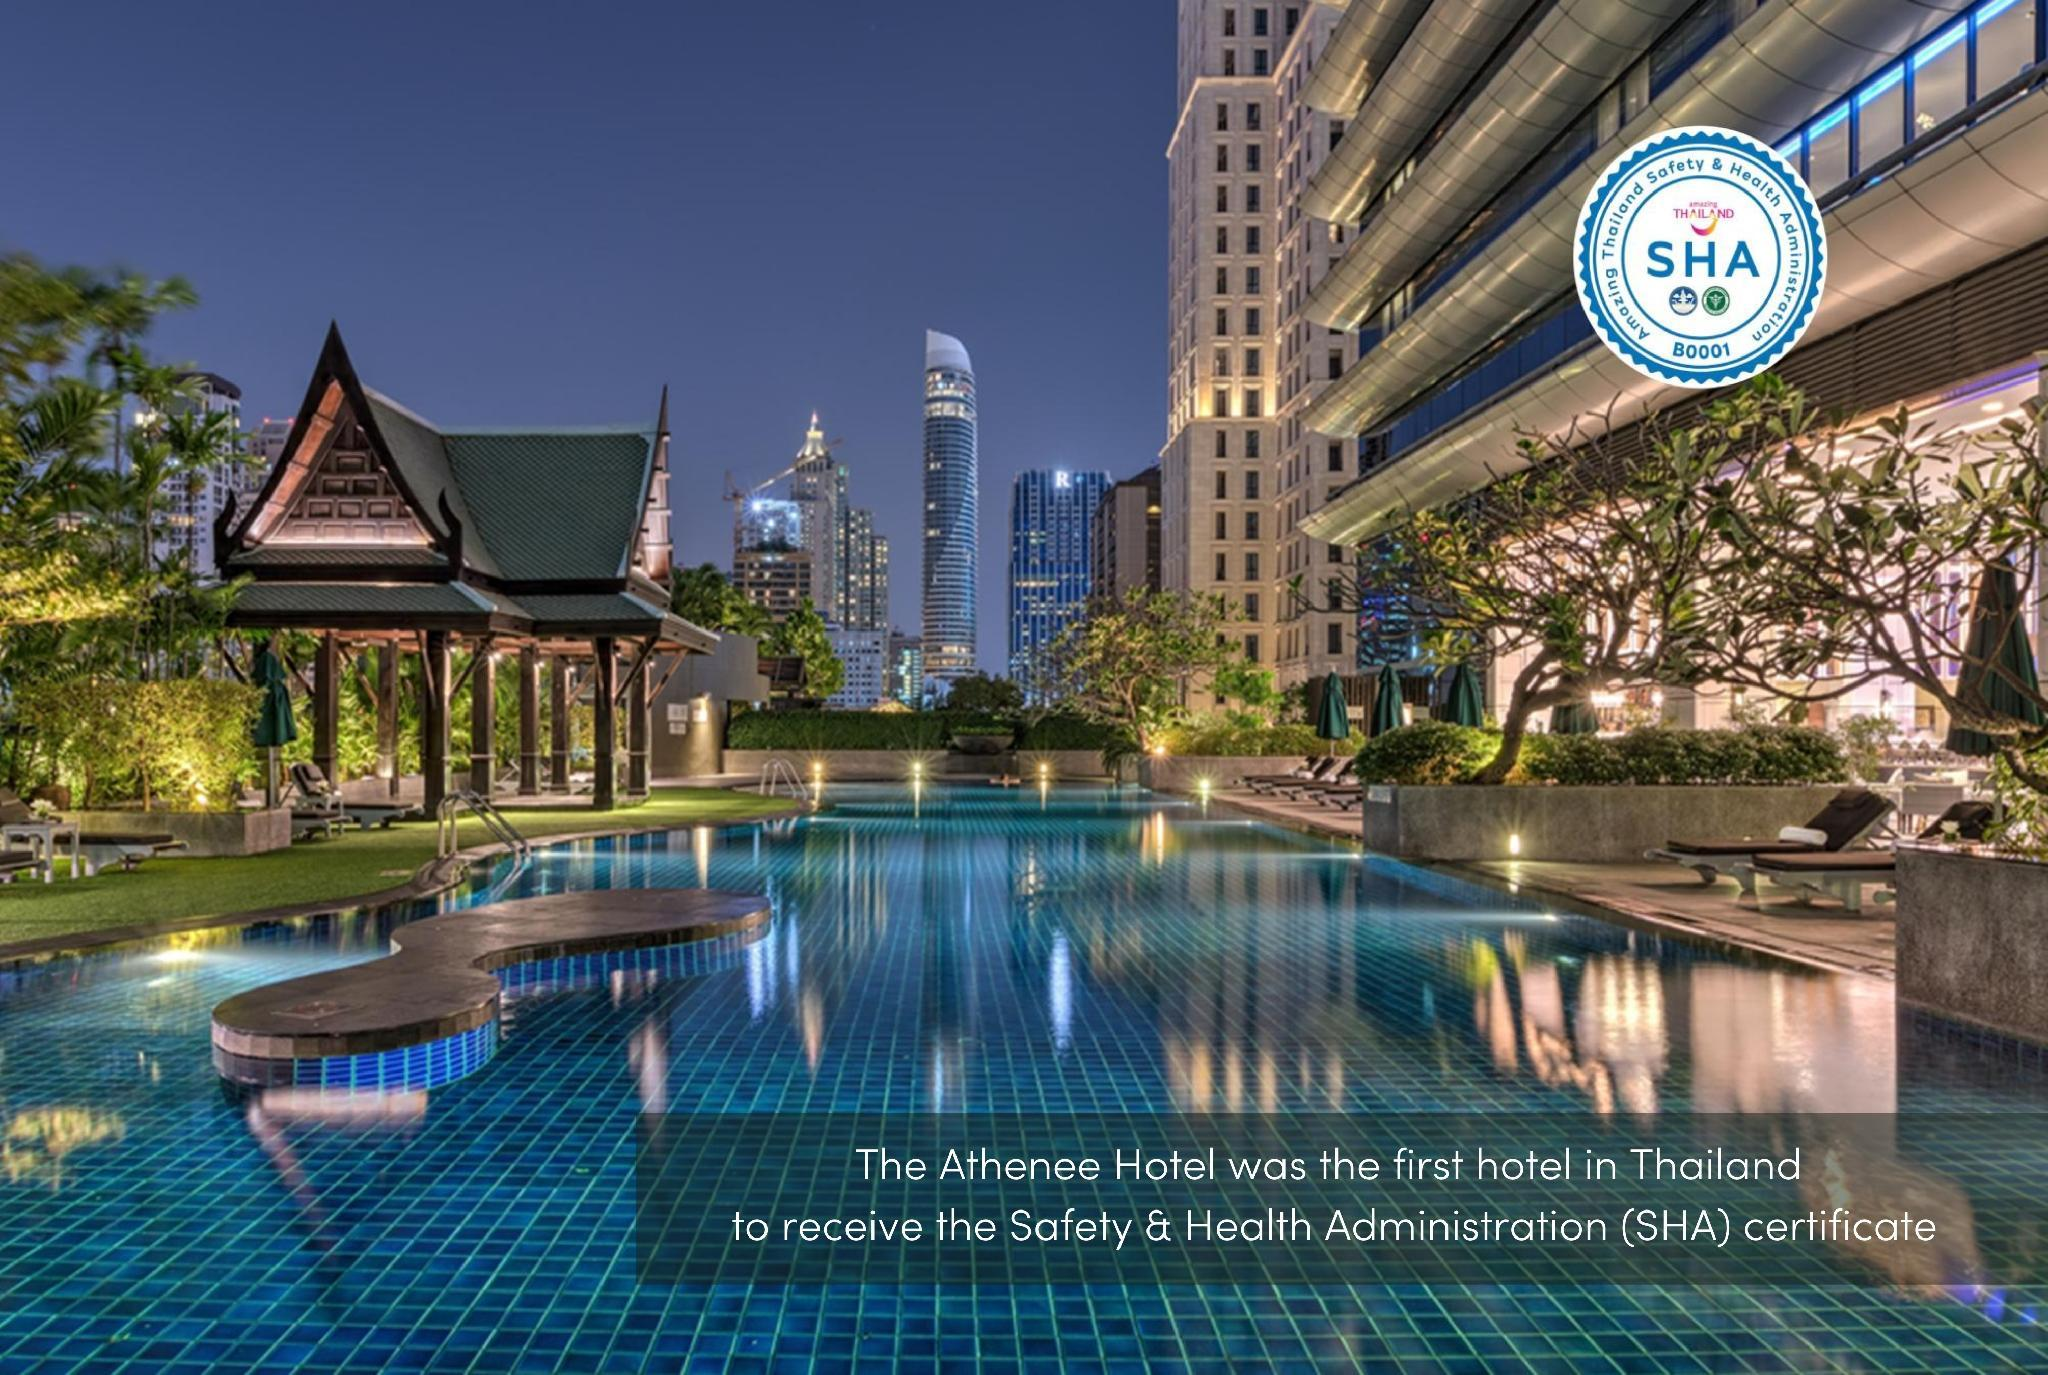 The Athenee Hotel A Luxury Collection Hotel Bangkok (SHA Certified)